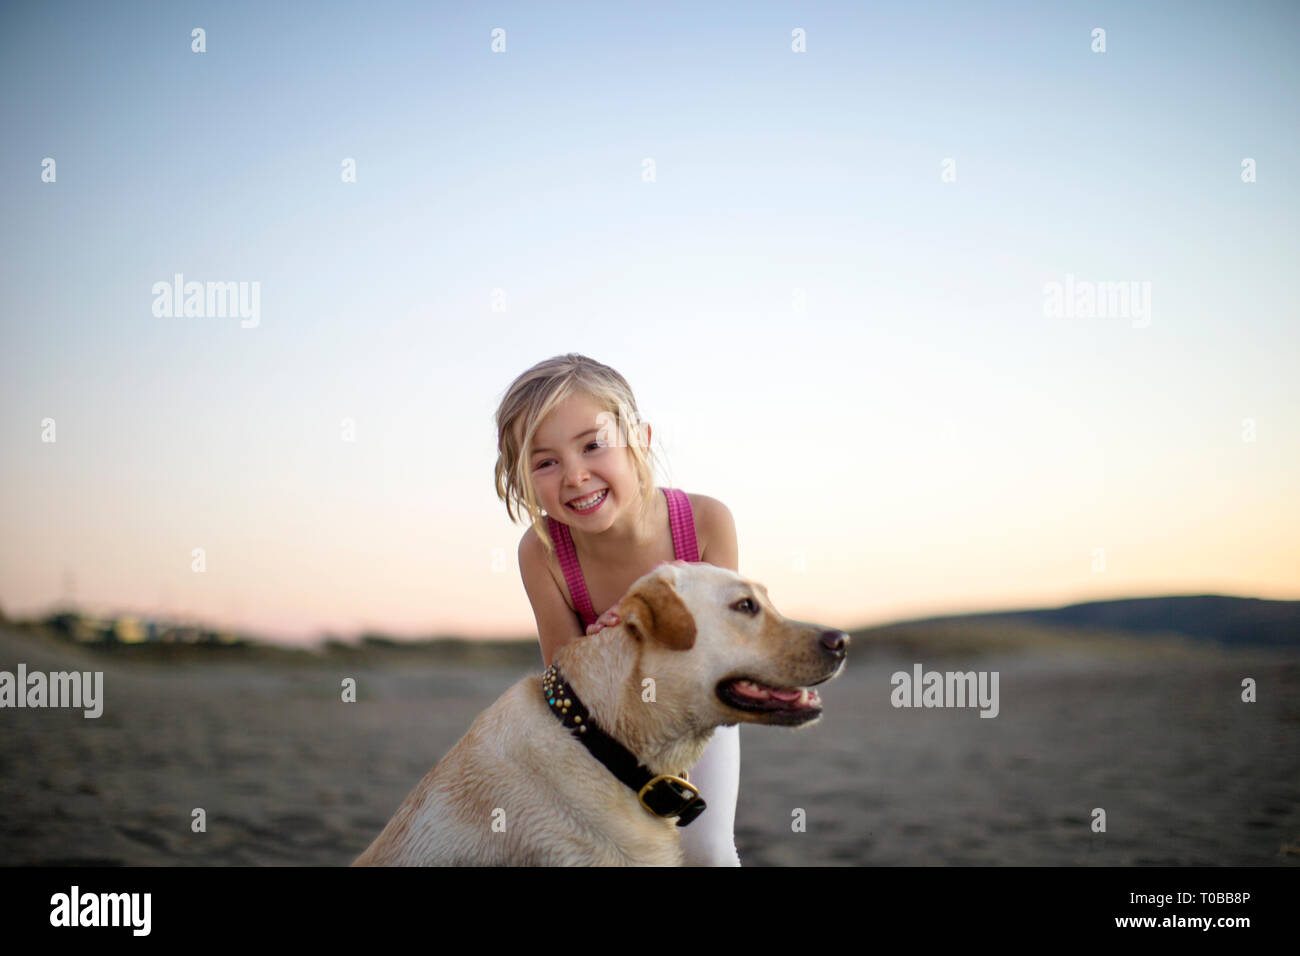 Portrait of a happy young girl smiling as she plays with her dog on the beach at dawn. Stock Photo